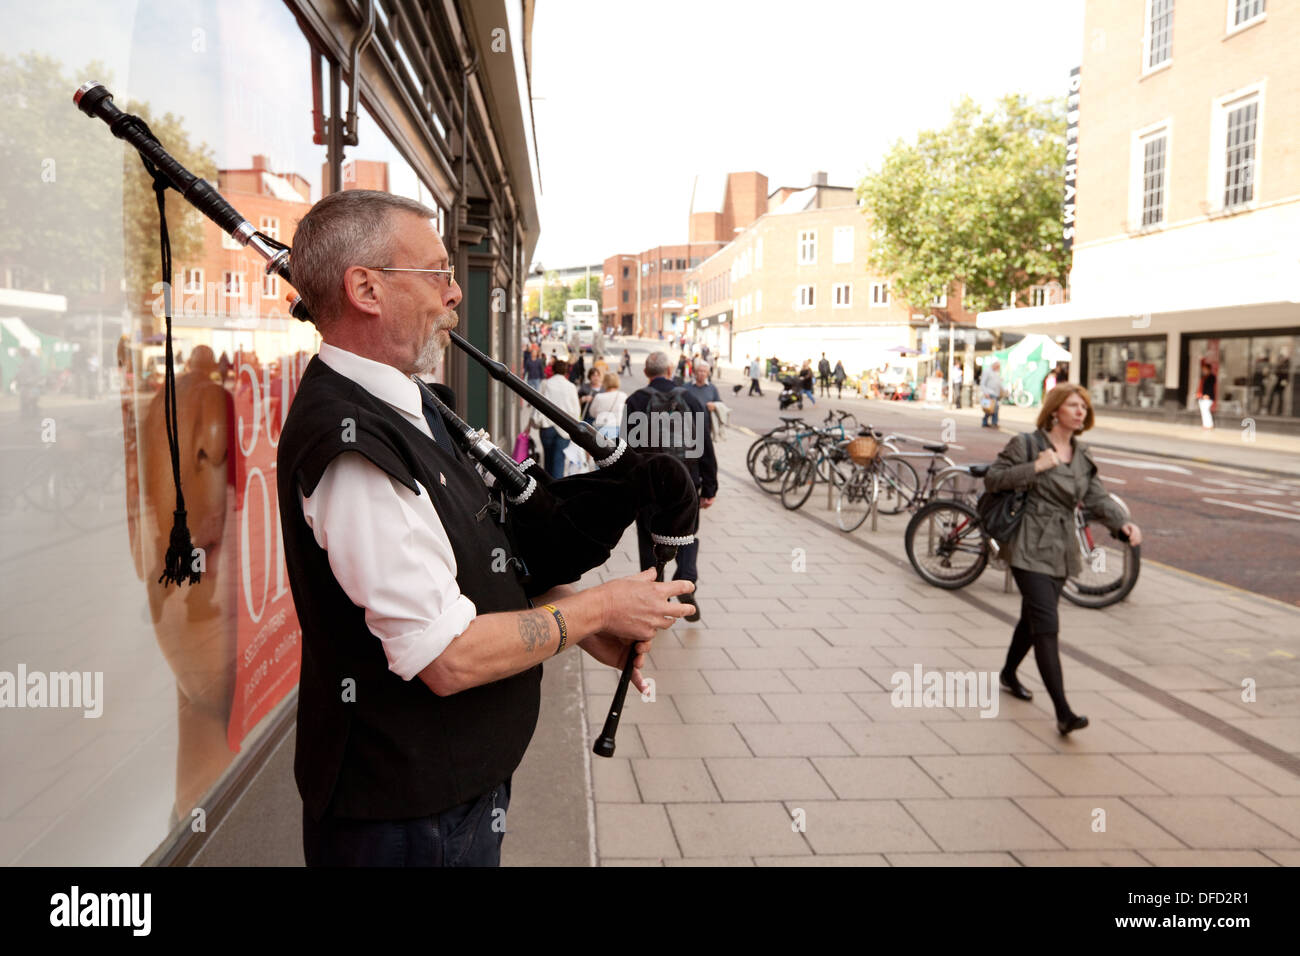 A Busker playing the bagpipes, Norwich, Norfolk UK - Stock Image